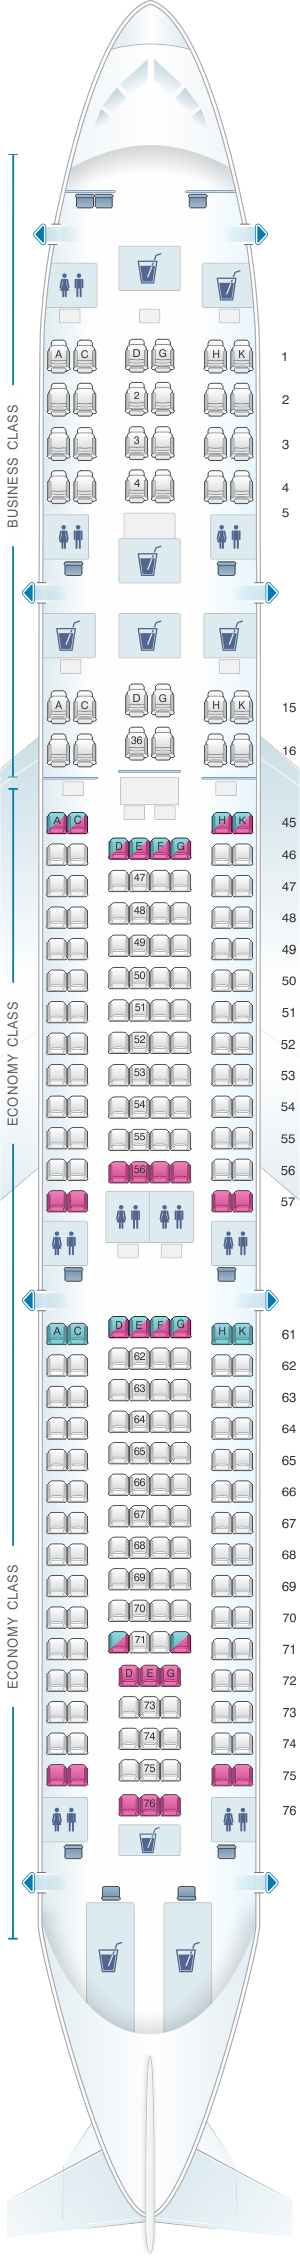 Seat map for South African Airways Airbus A340 300 V2